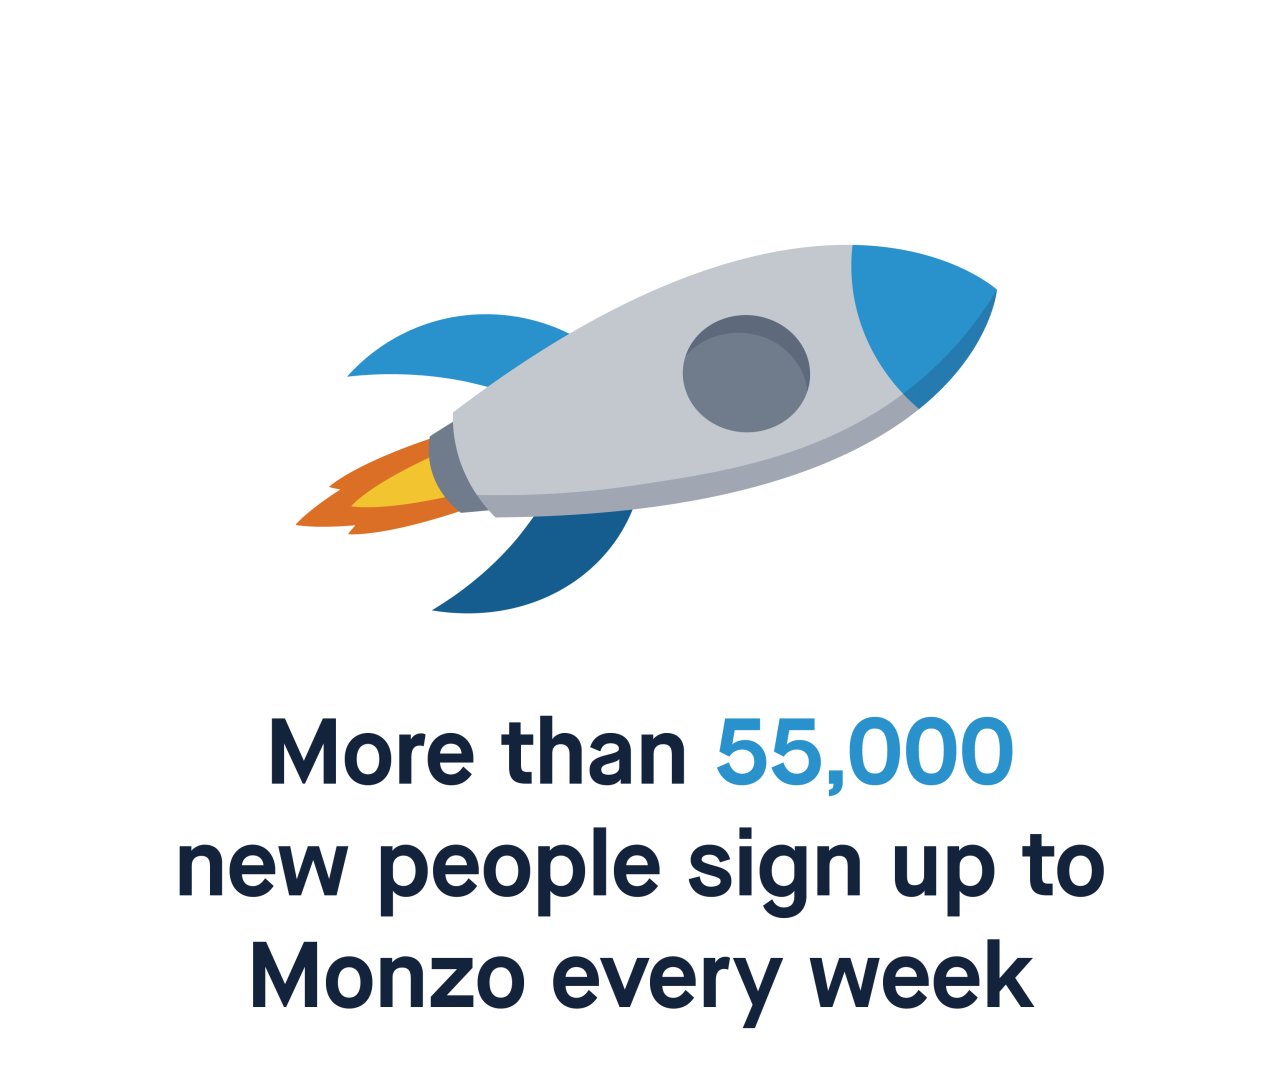 More than 55,000 new people sign up to Monzo every week